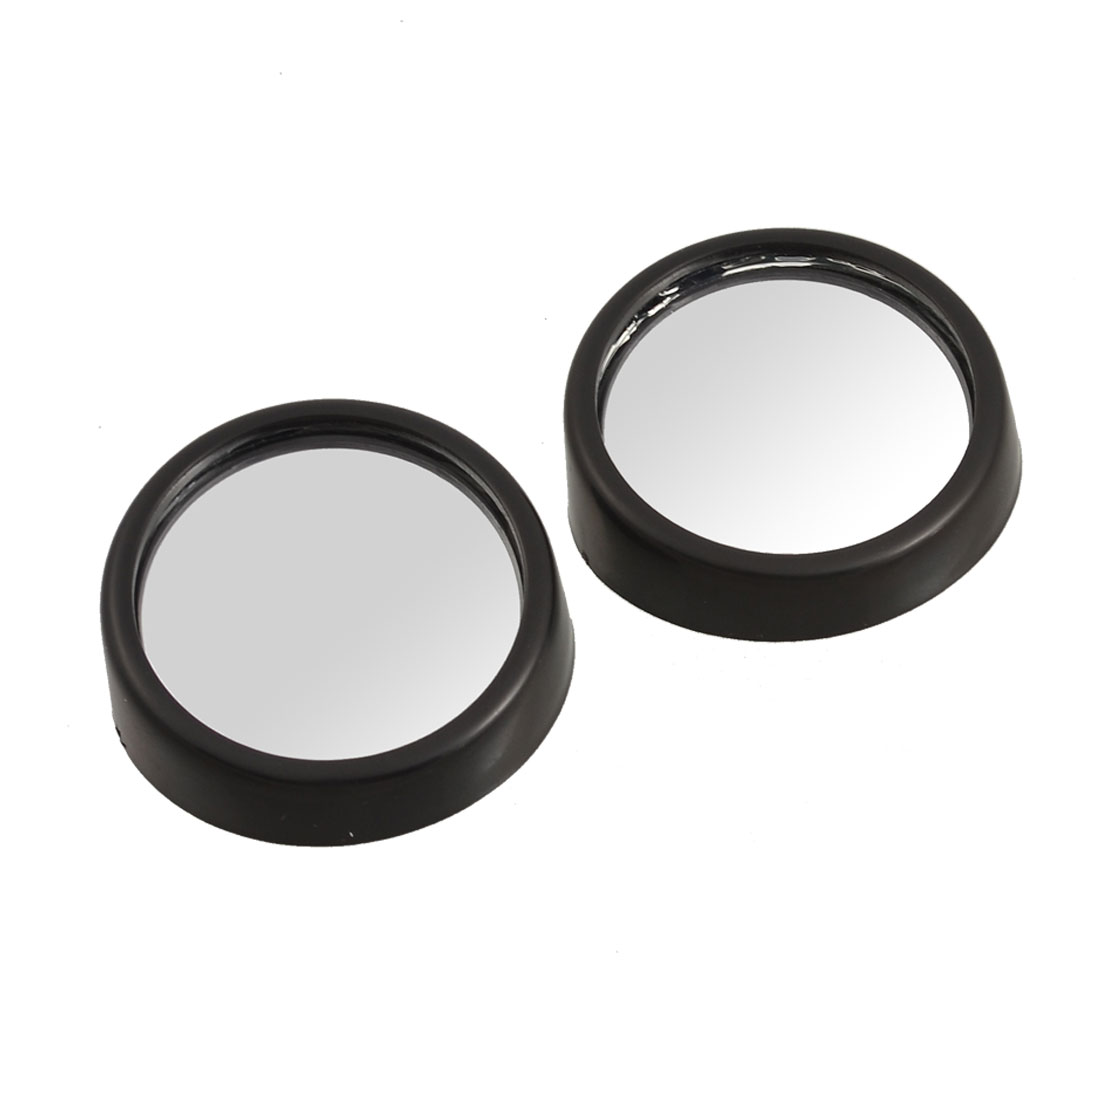 Car Black 40mm Round Rearview Blind Spot Mirror 2 Pcs